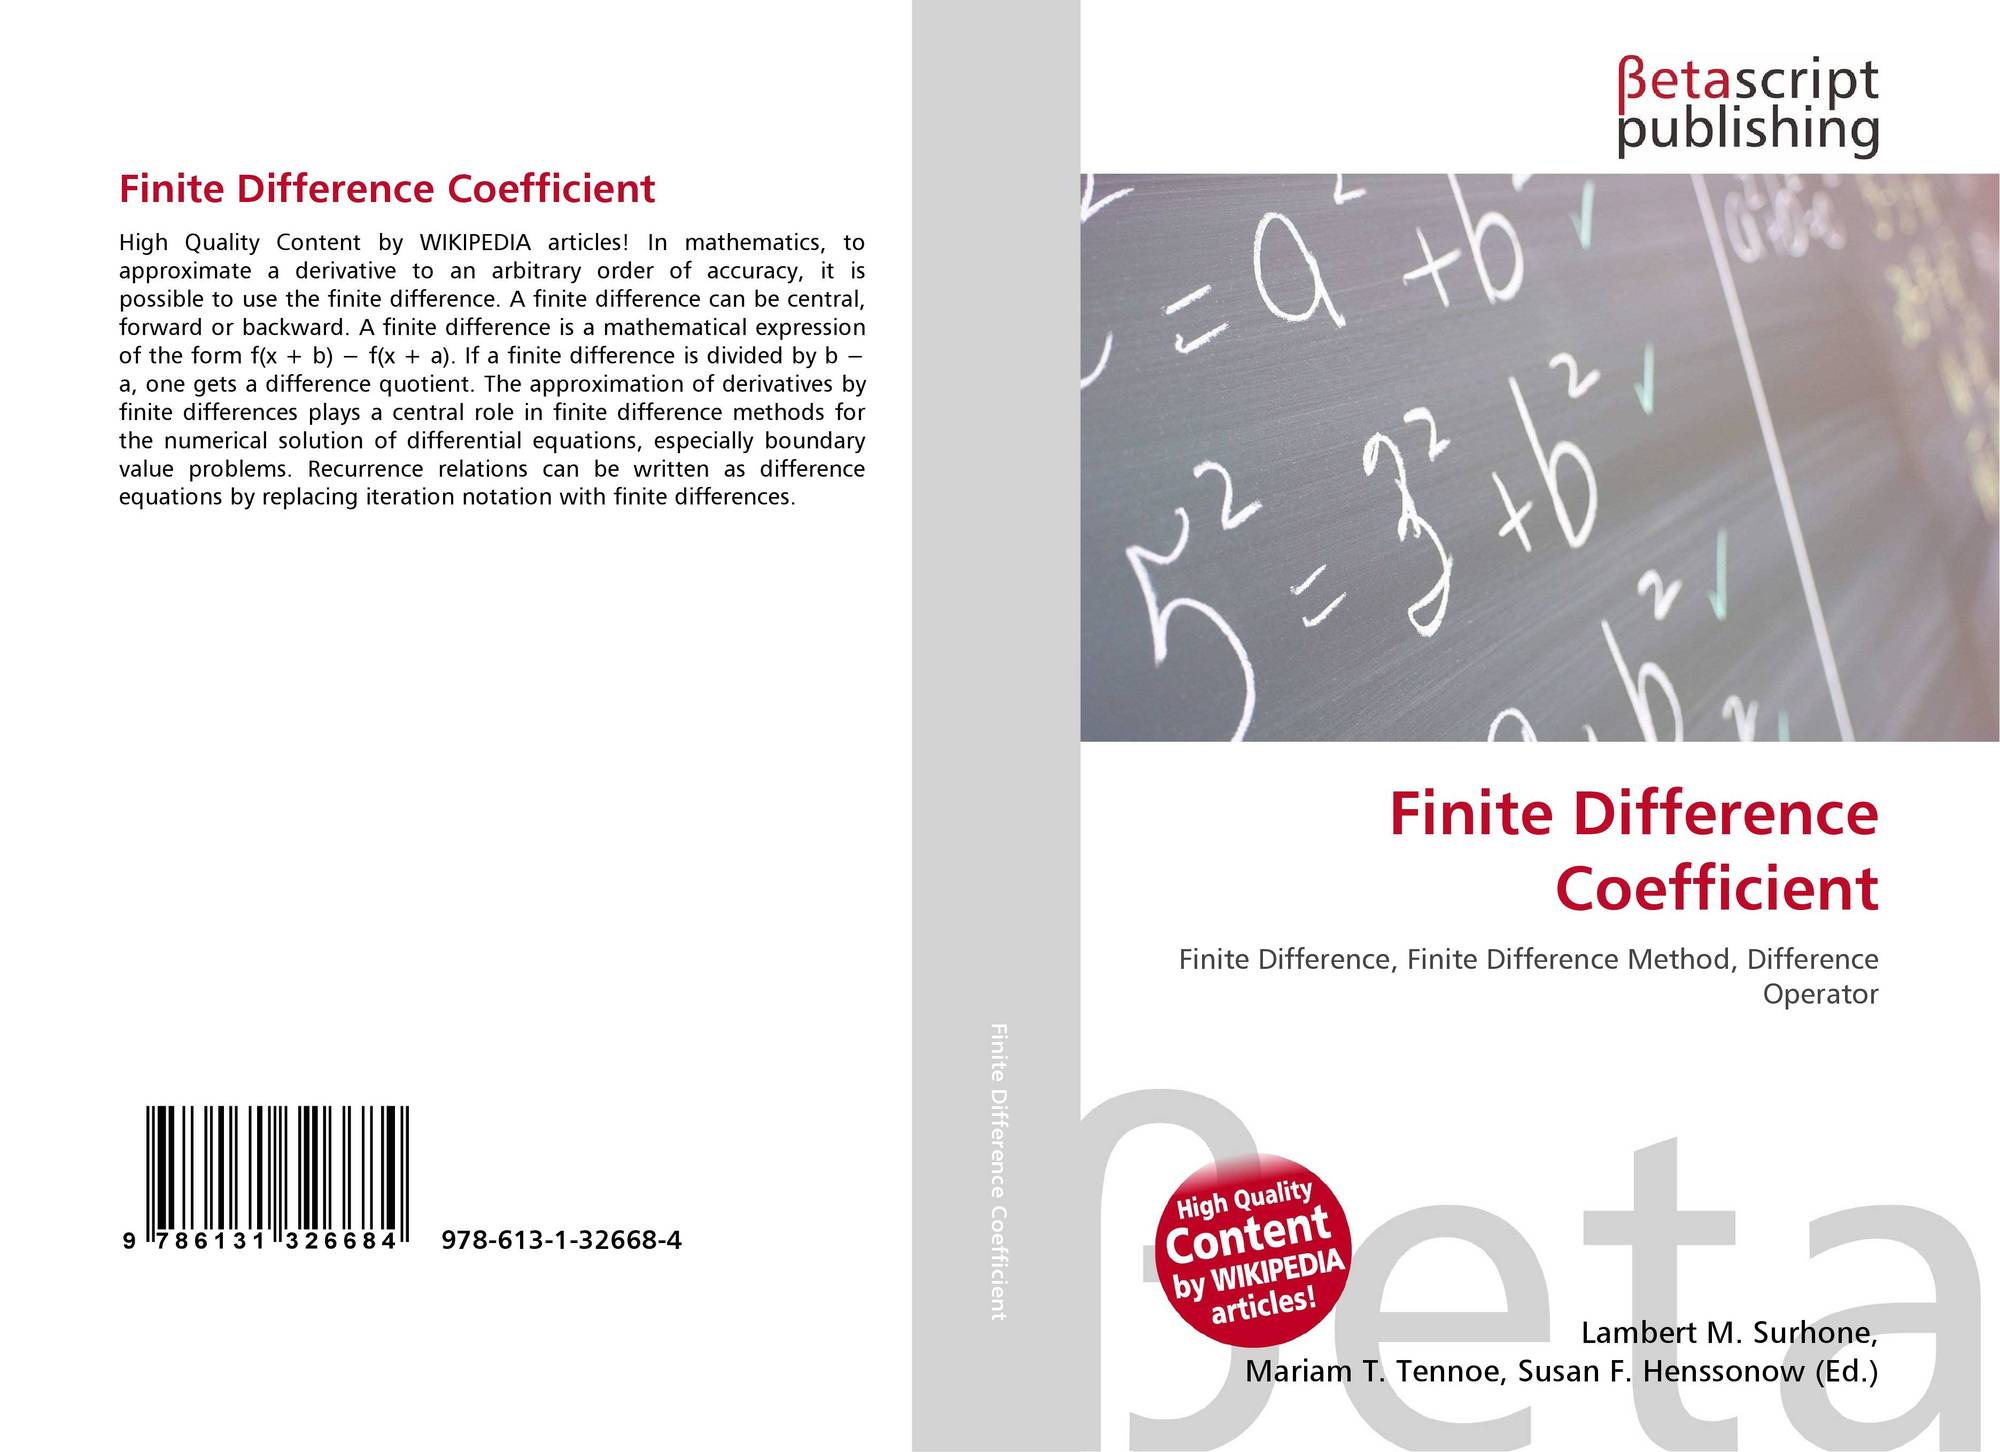 Finite Difference Coefficient, 978-613-1-32668-4, 6131326681